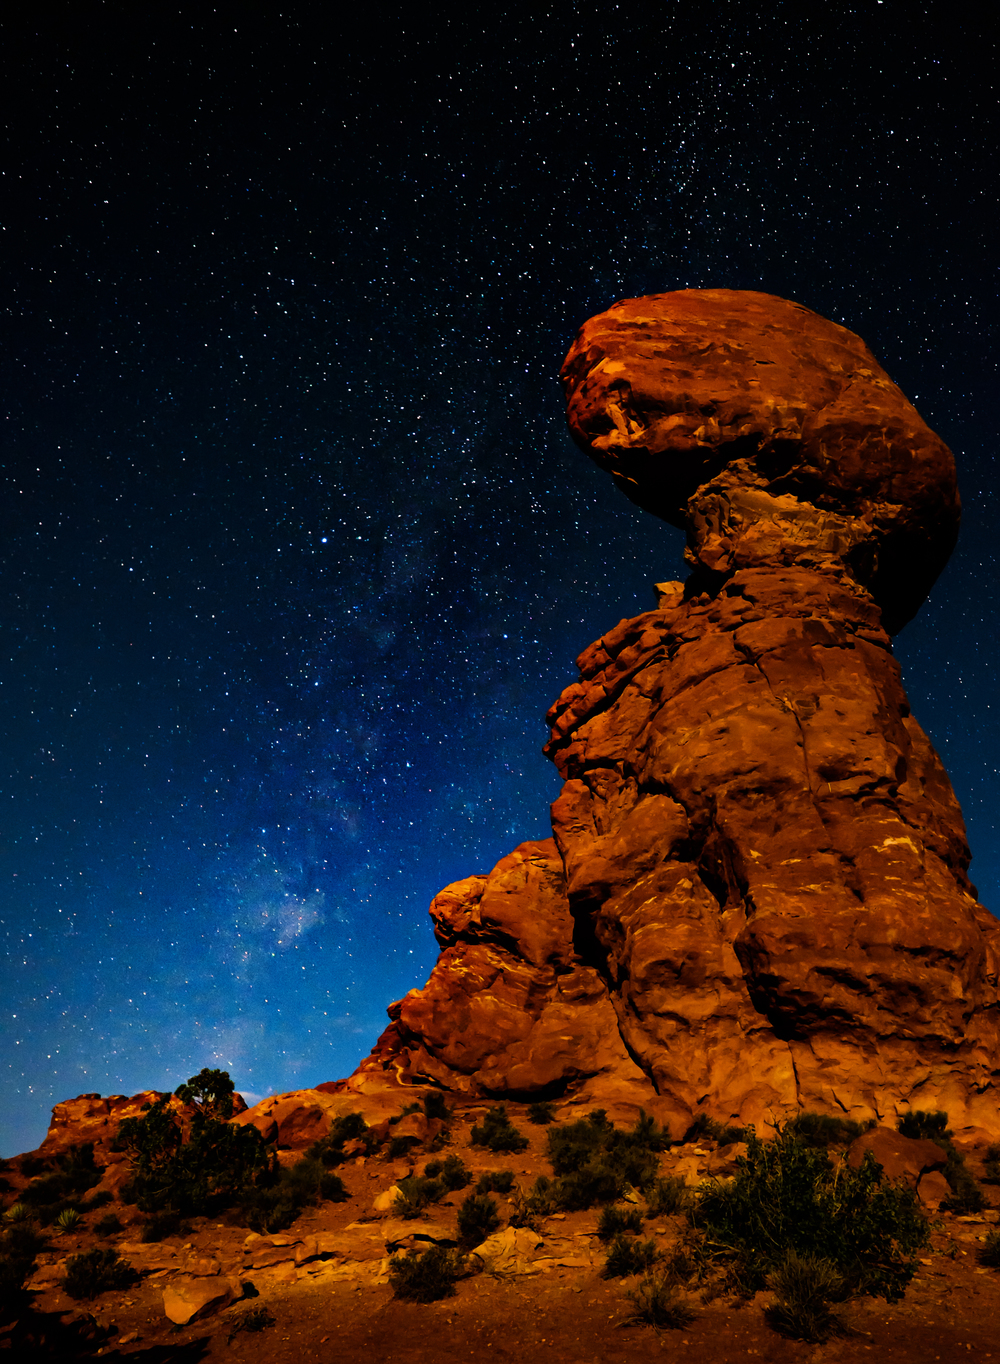 Balanced Rock by Moonlight